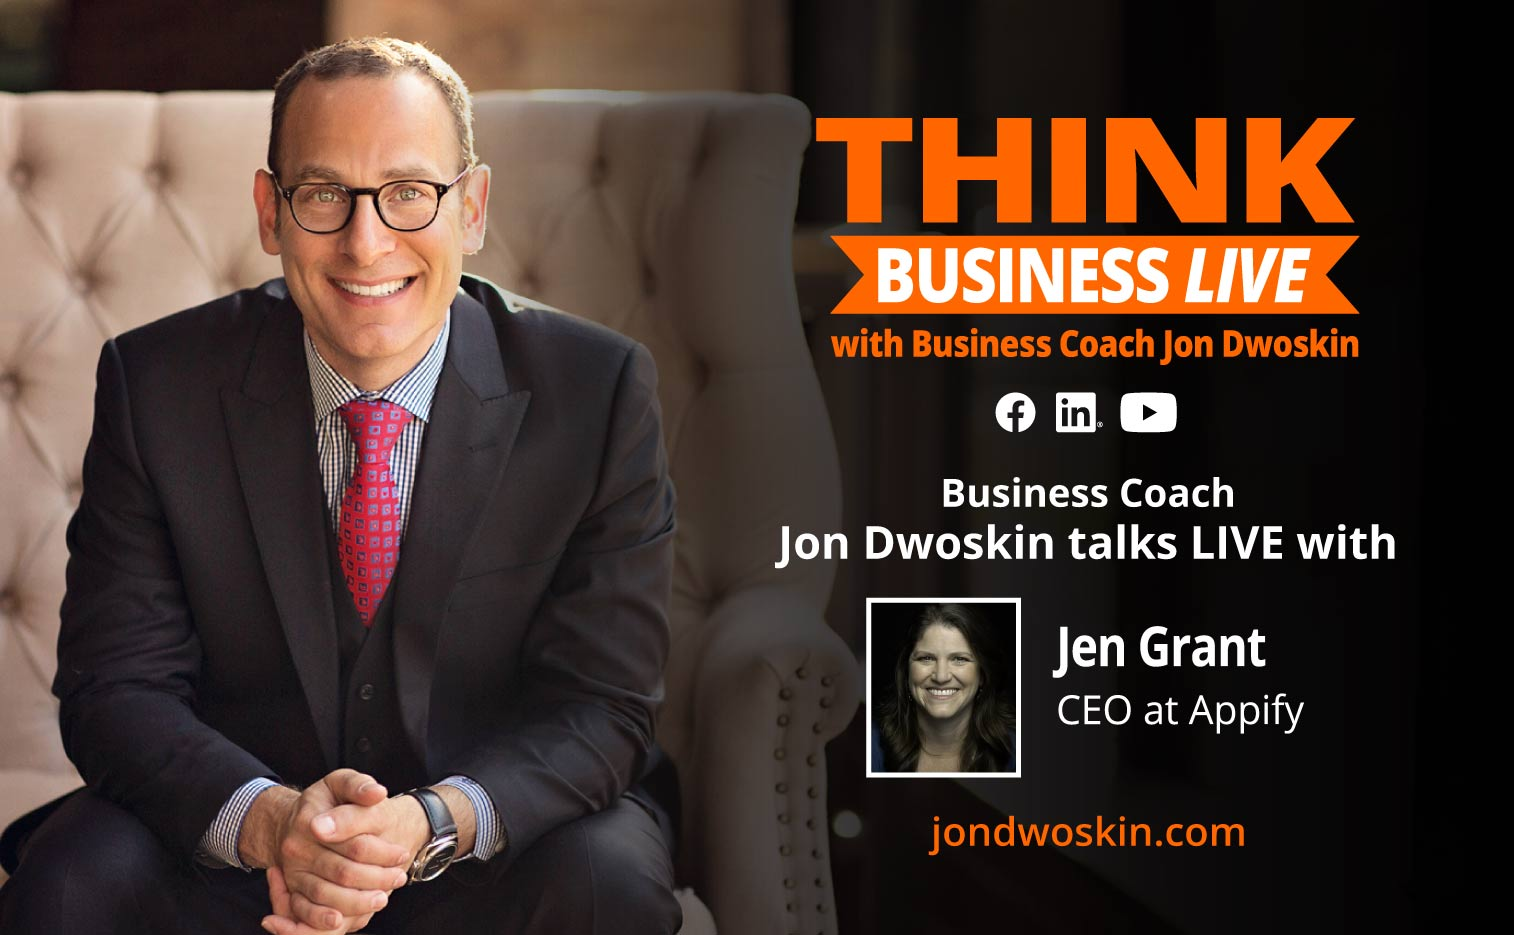 THINK Business LIVE: Jon Dwoskin Talks with Jen Grant